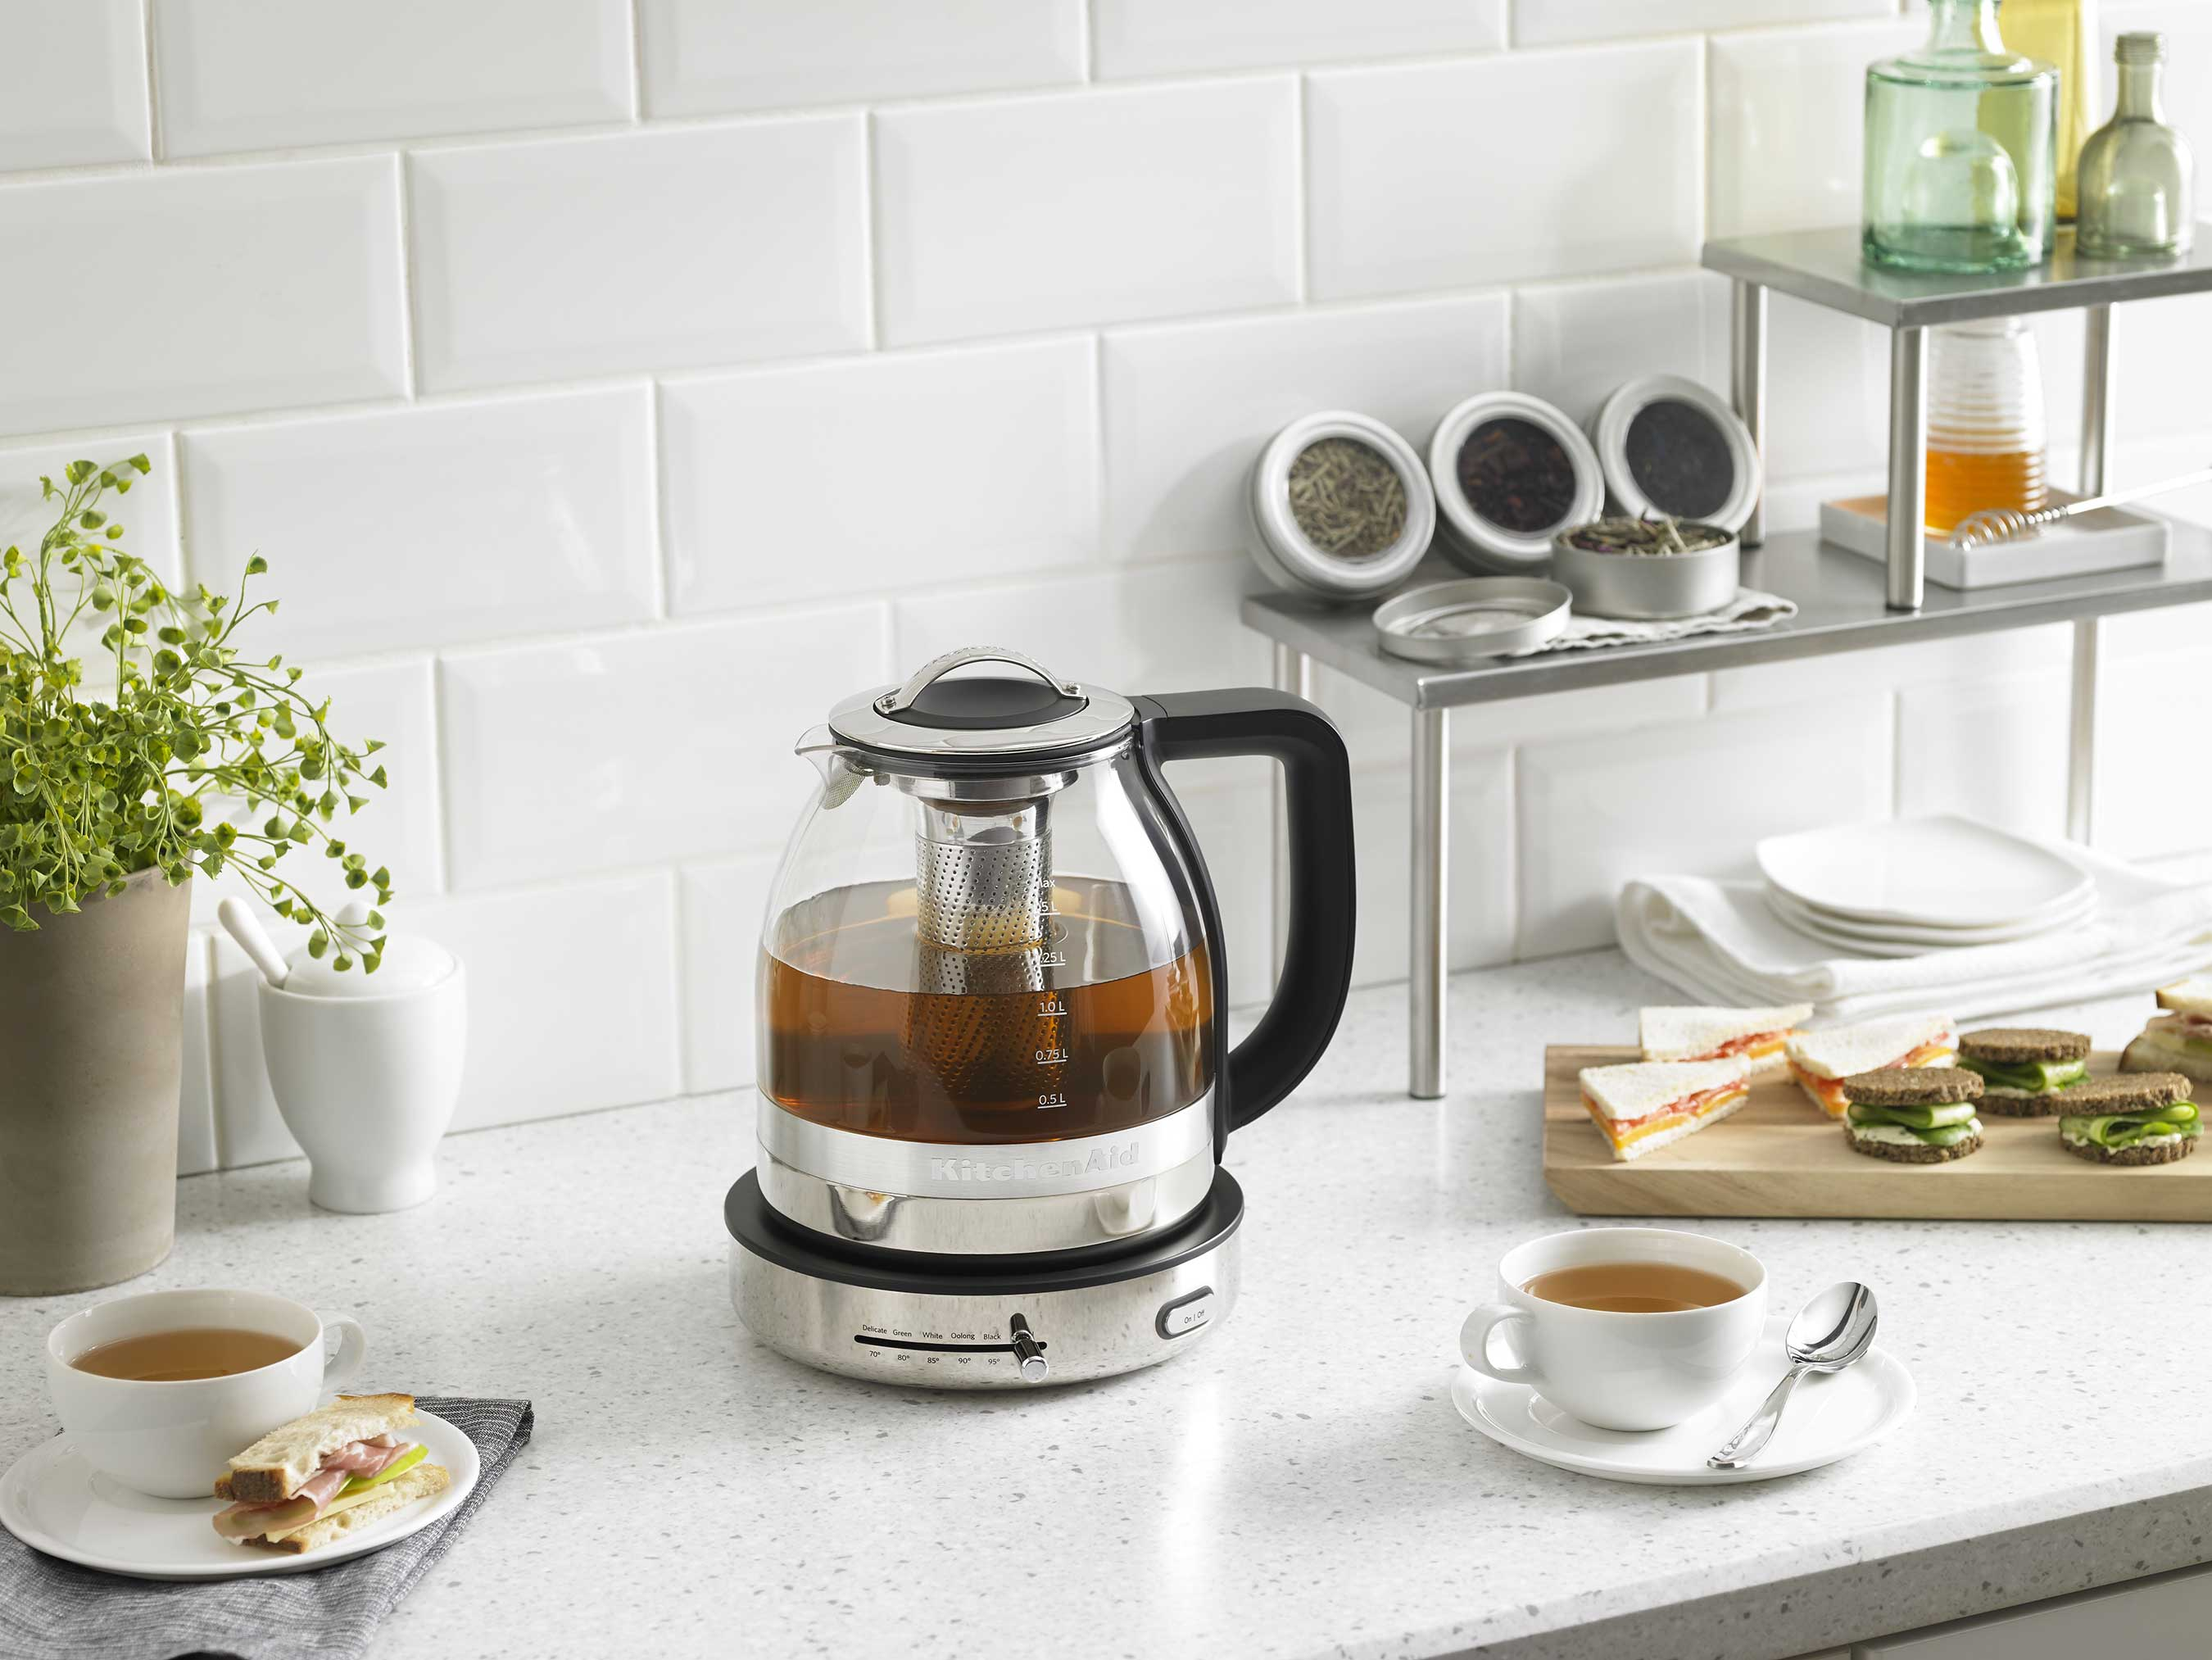 The new KitchenAid® Glass Tea Kettle with preset settings offers tea lovers easy mastery of the perfect cup.